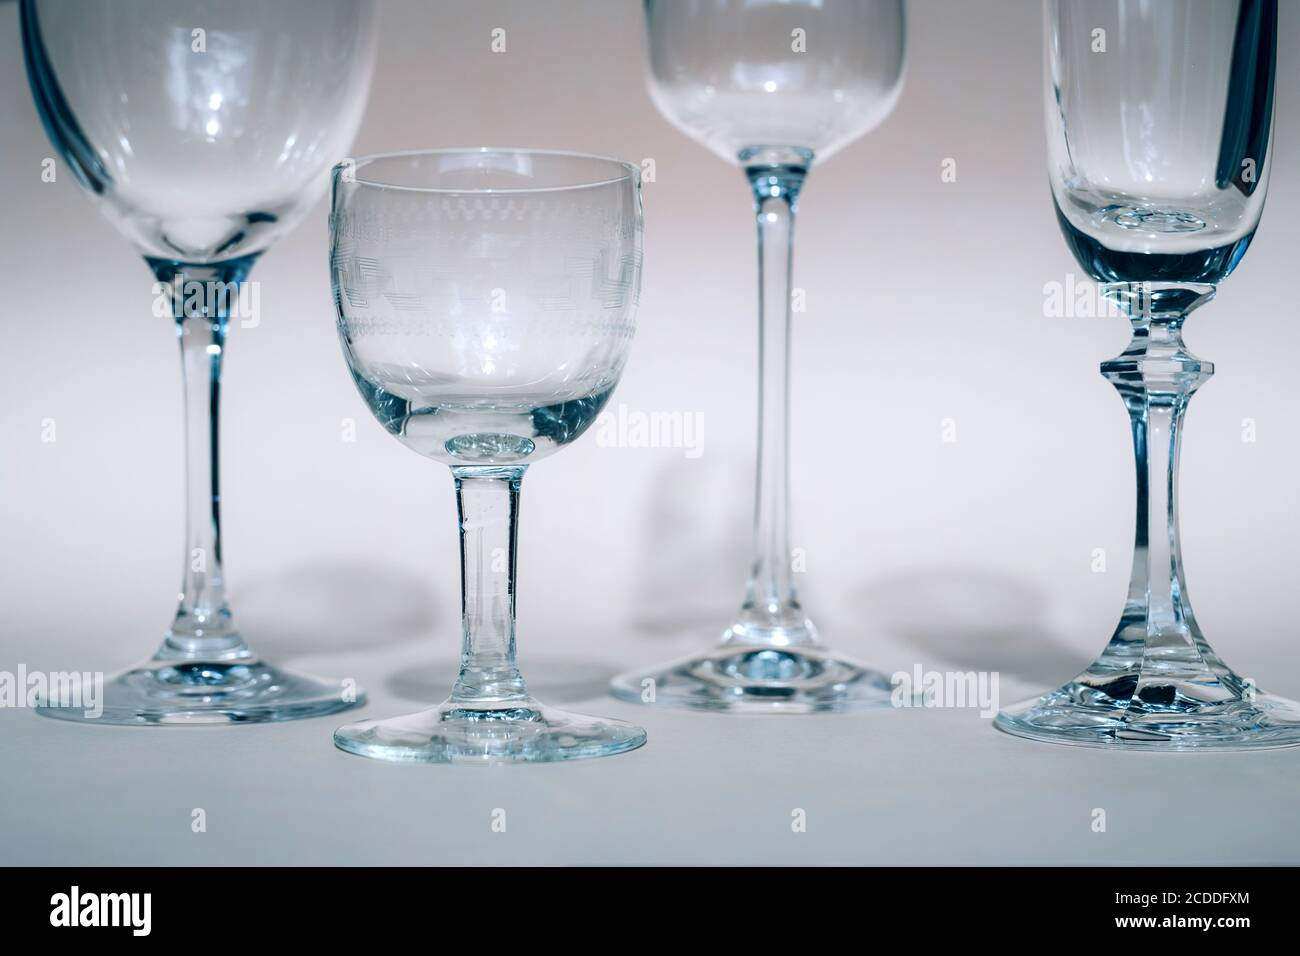 Wine Glasses On A Sunny Table Cast Shadows Sunlight Crystal Glassware Wine Glasses Champagne Flute Stock Photo Alamy